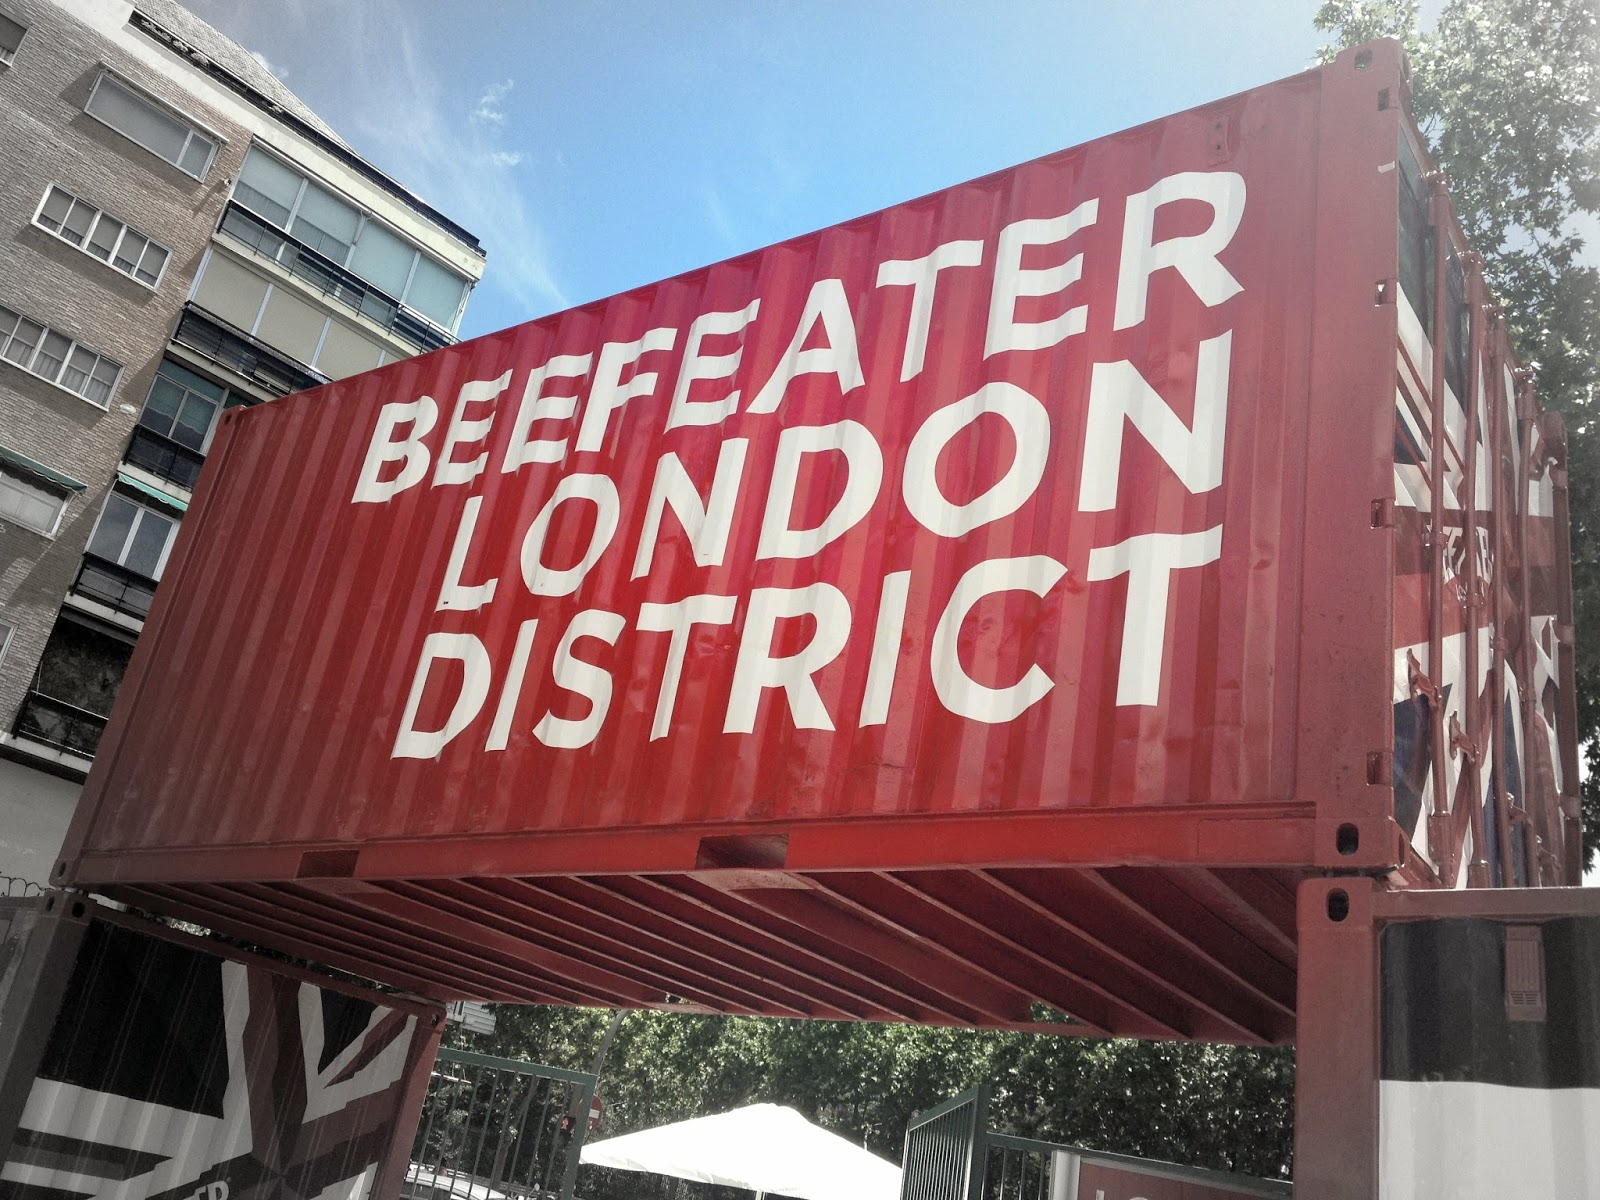 beefeater london district principe pio puerta